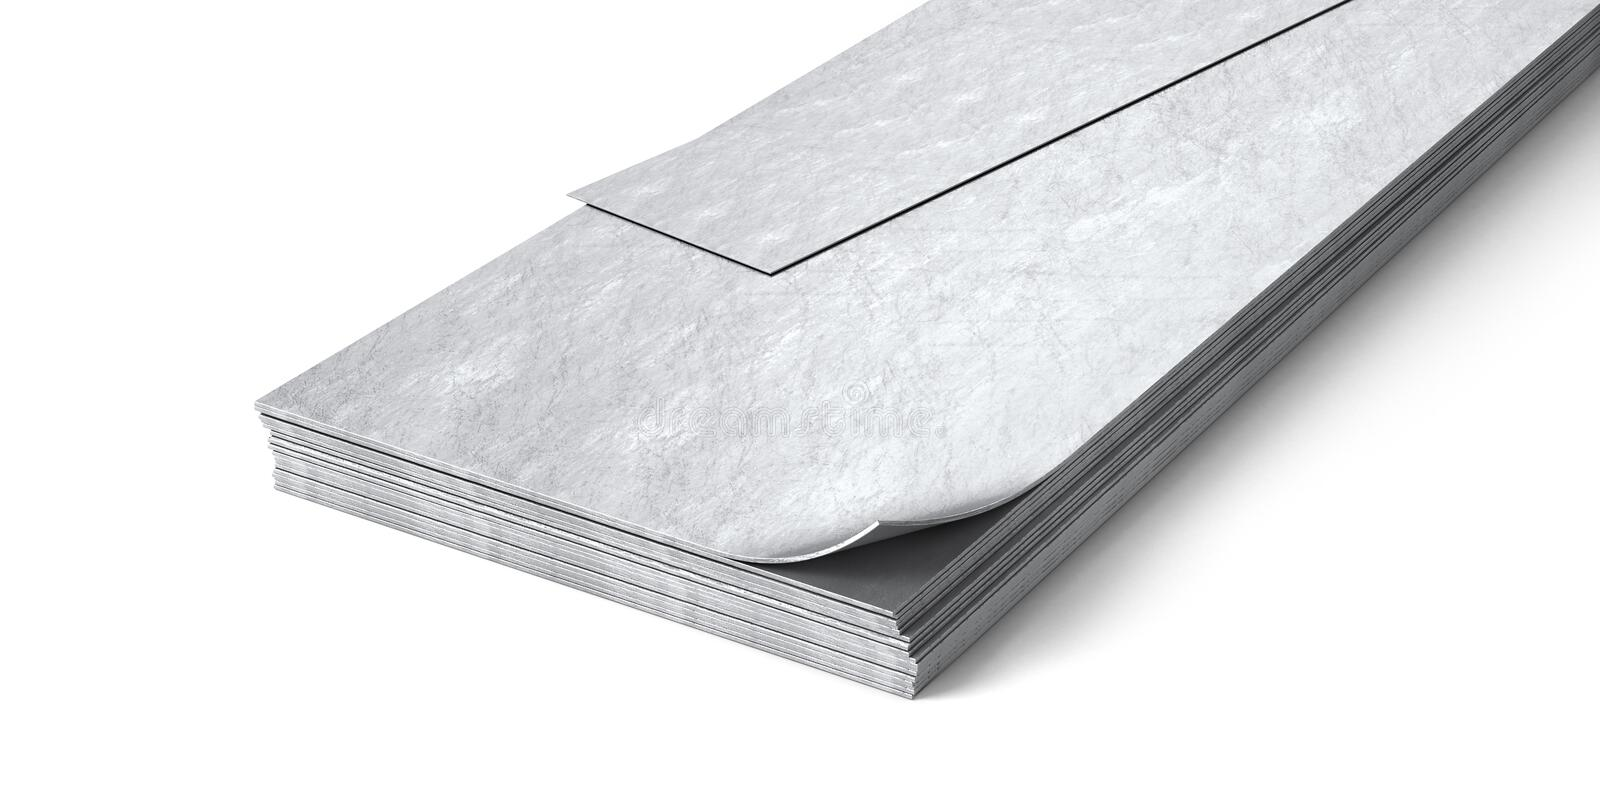 Metal sheets isolated on white background. 3d illustration royalty free illustration